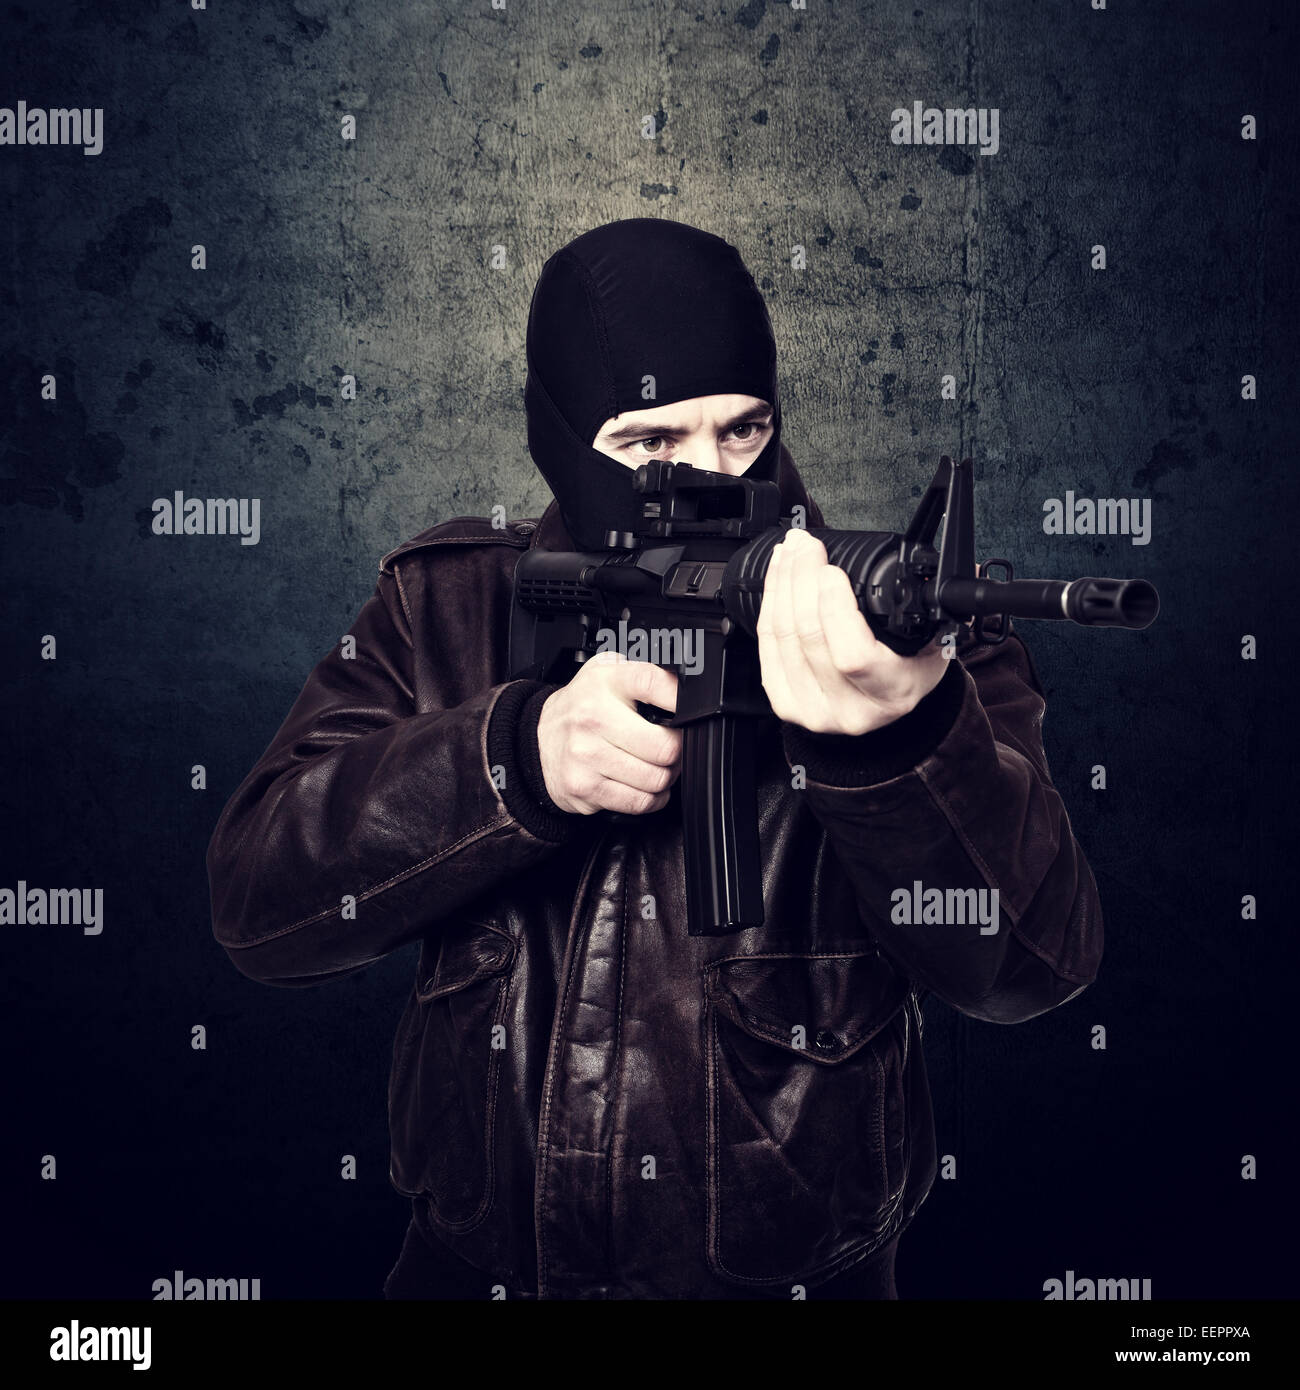 portrait of terrorist and grunge background - Stock Image